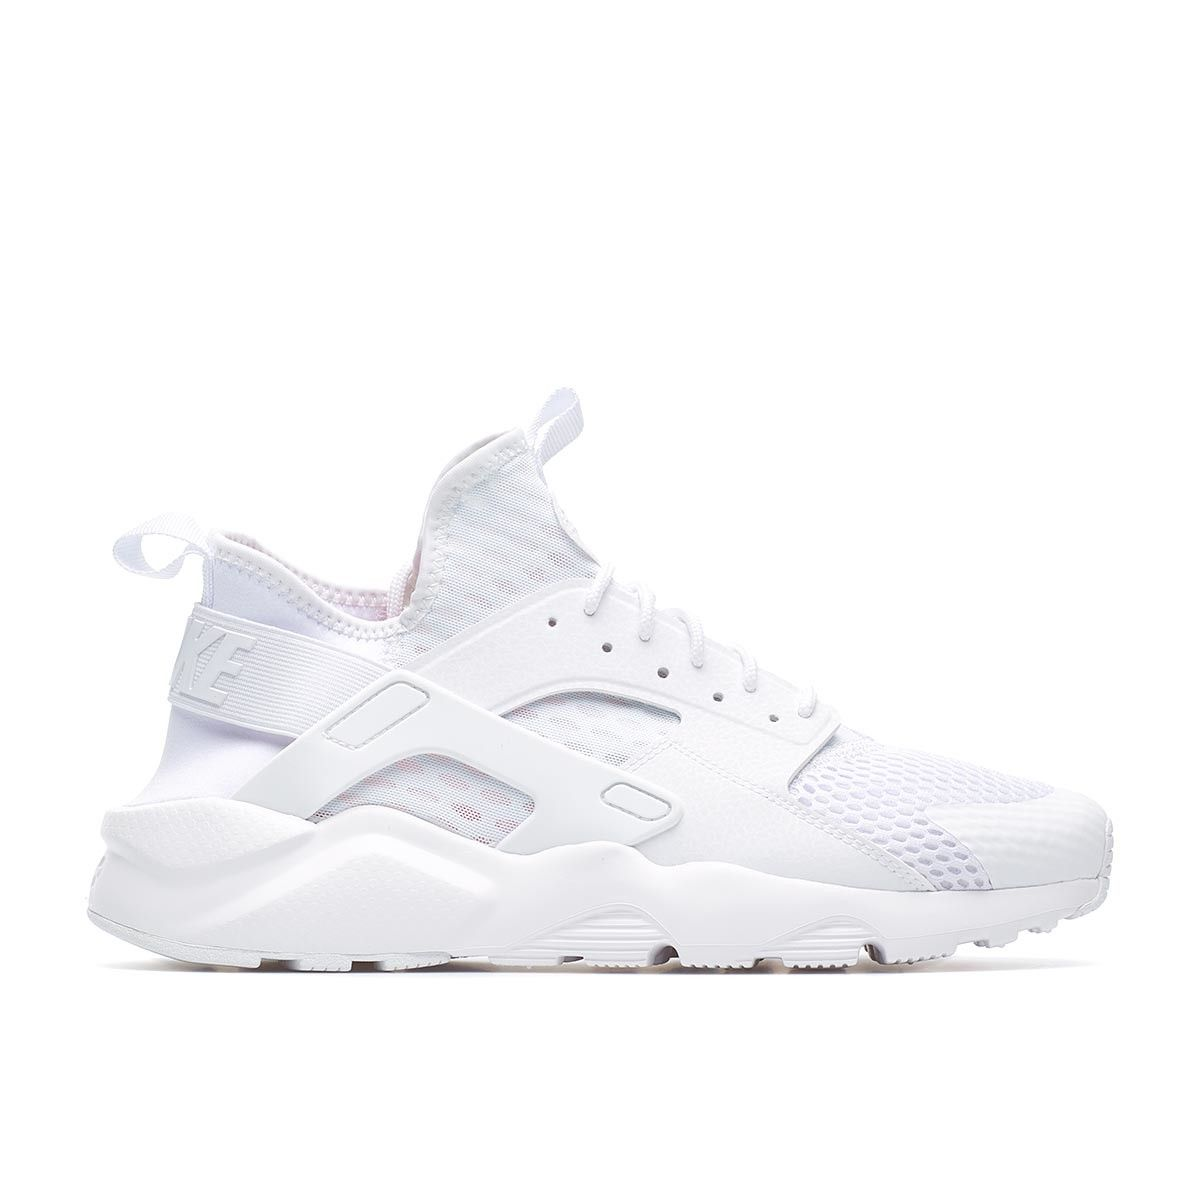 06ff9c605ba Nike Air Huarache Run Ultra Br from the Summer  16 collection in white